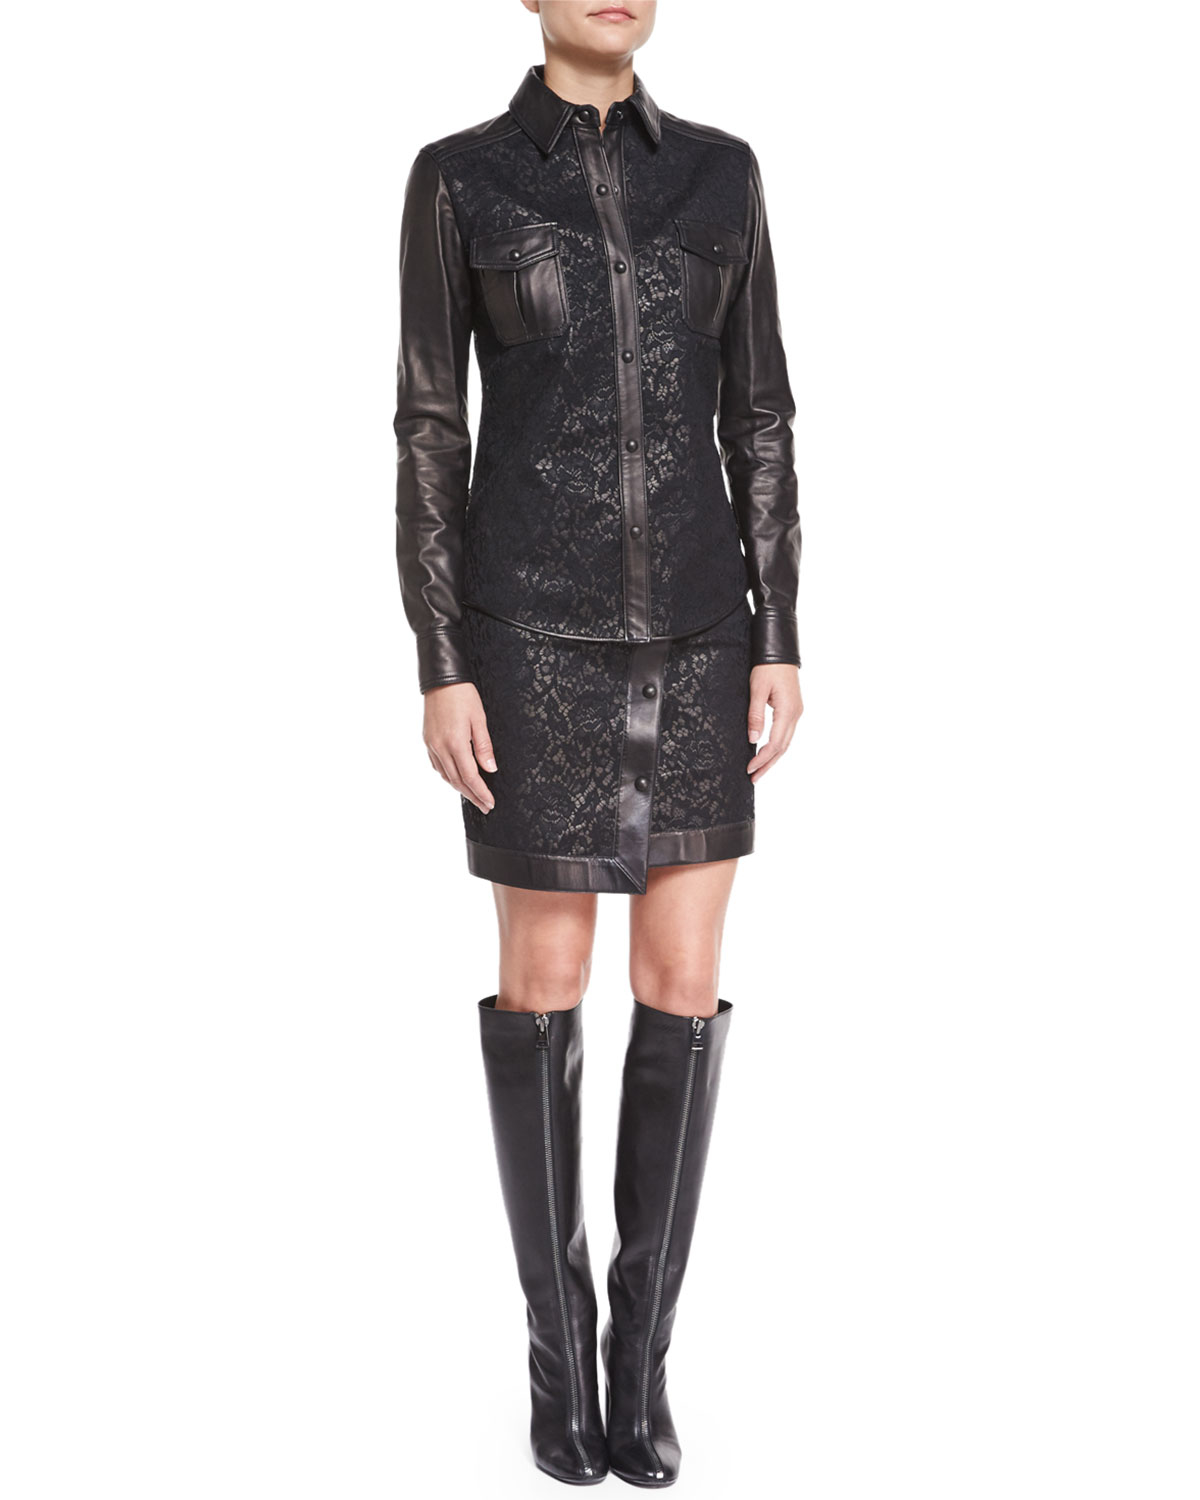 lyst tom ford asymmetric lace leather mini skirt in black. Black Bedroom Furniture Sets. Home Design Ideas